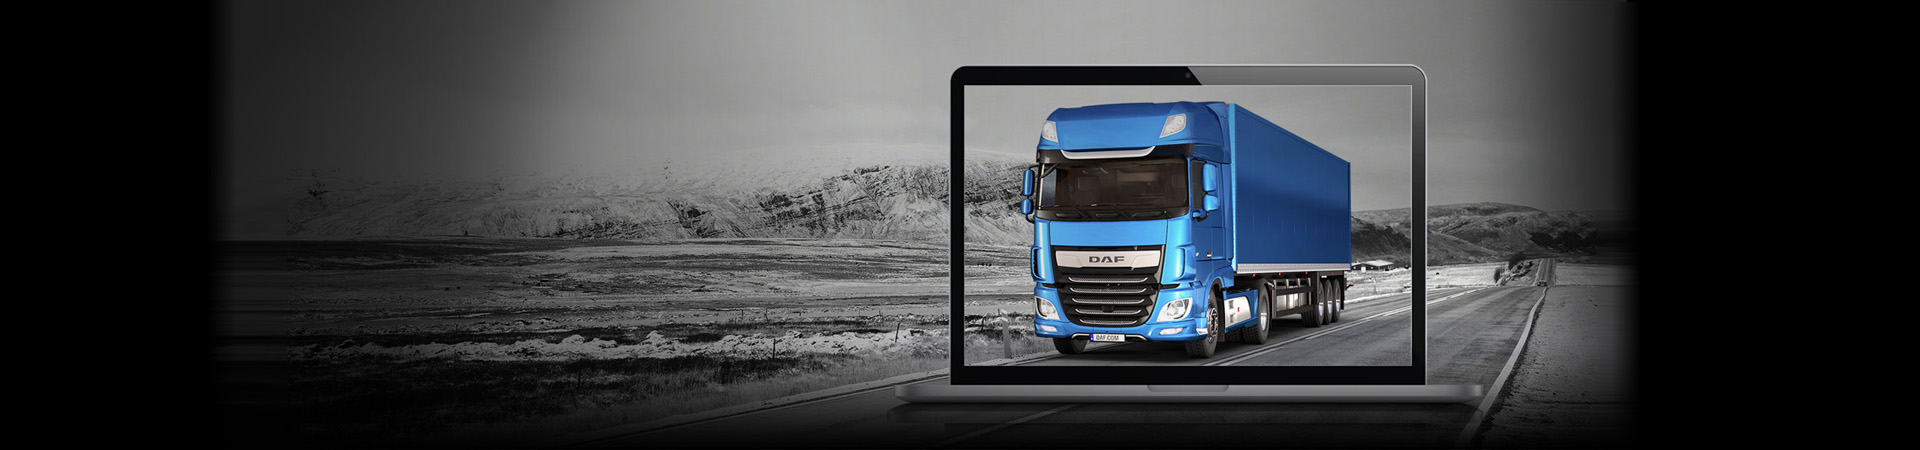 Laptop-with-truck-configurator